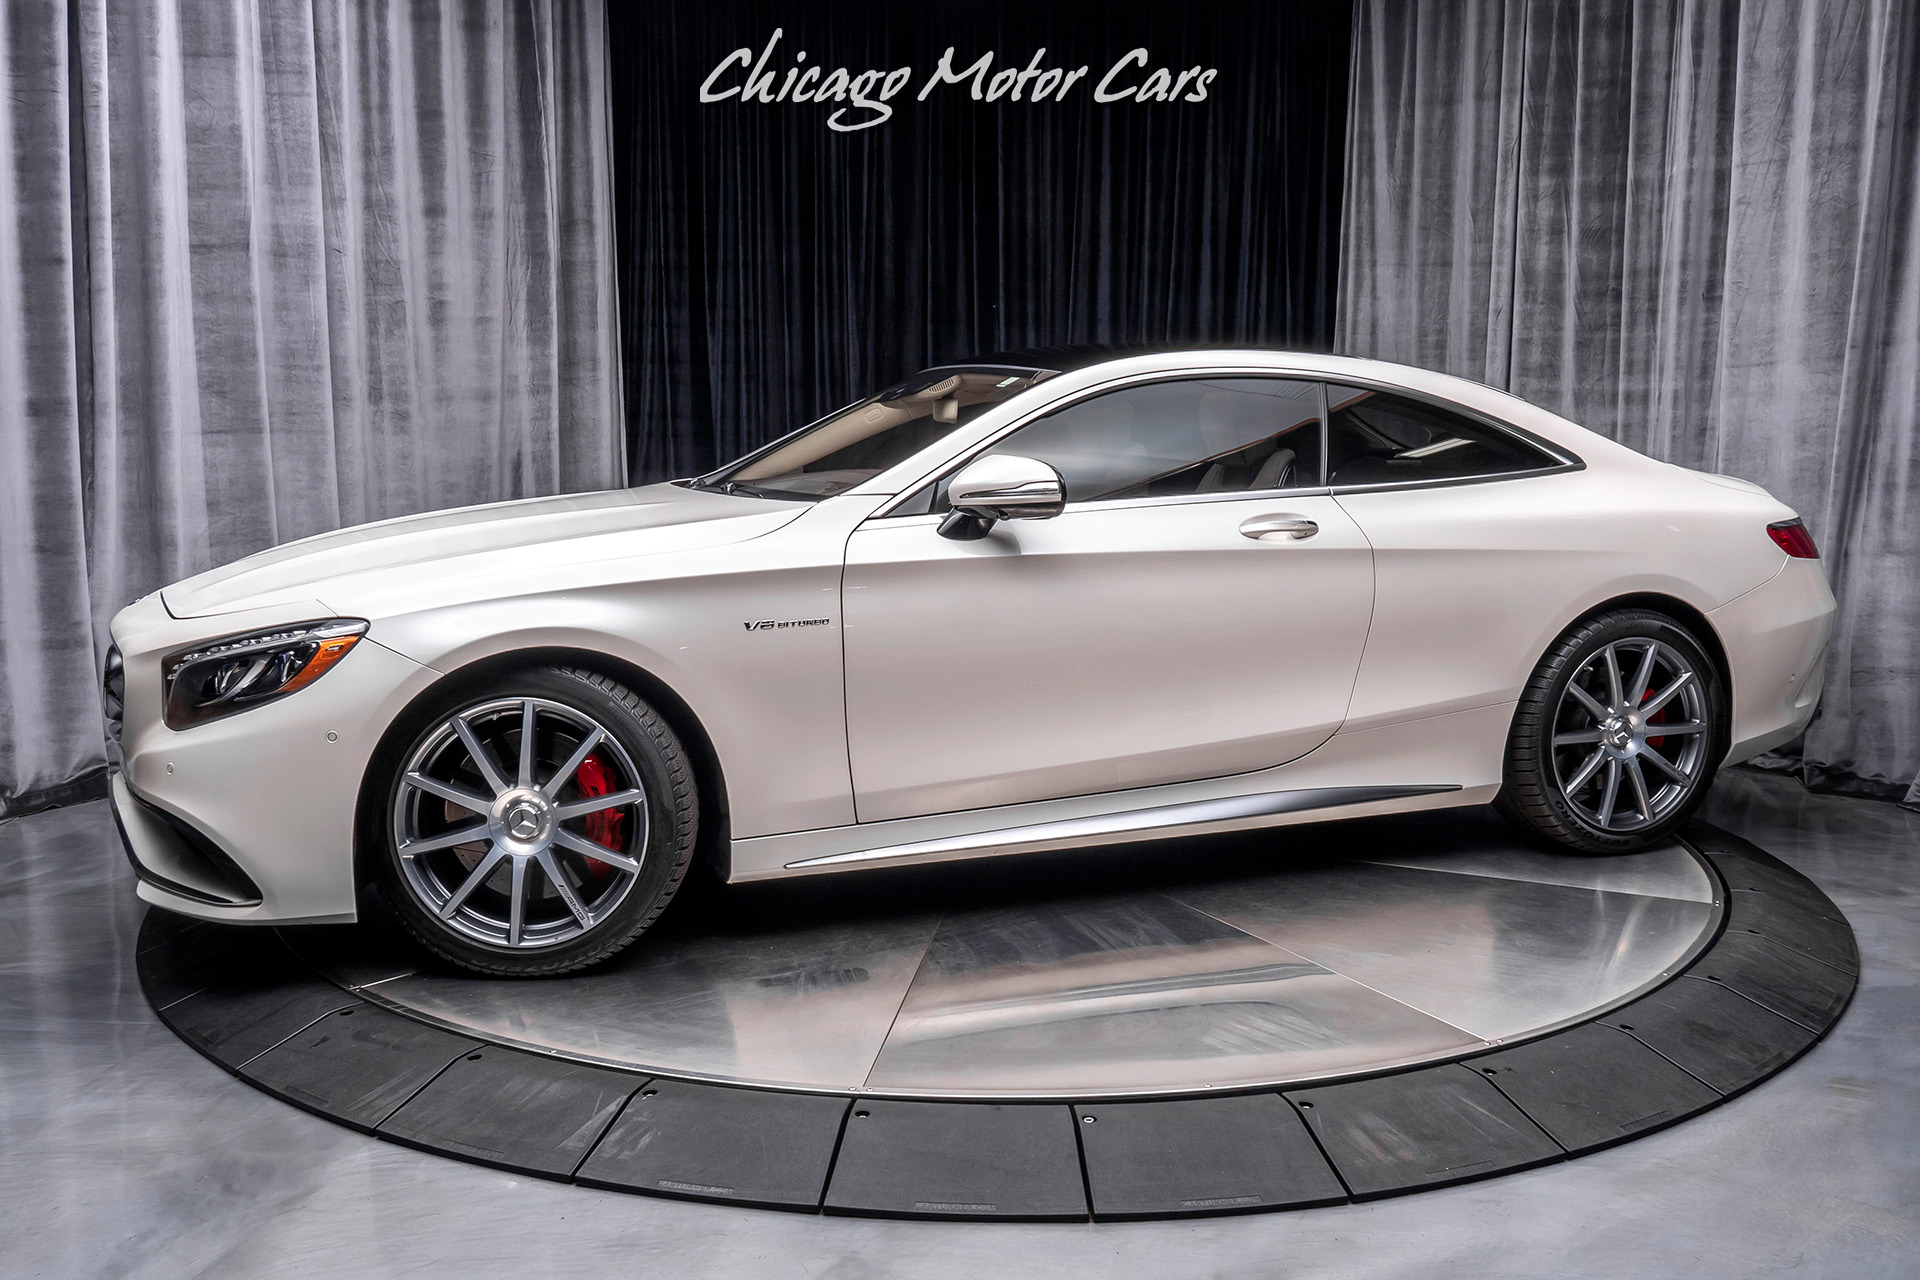 Used 2015 Mercedes Benz S63 Amg 4matic Coupe Msrp 171 070 Only 16k